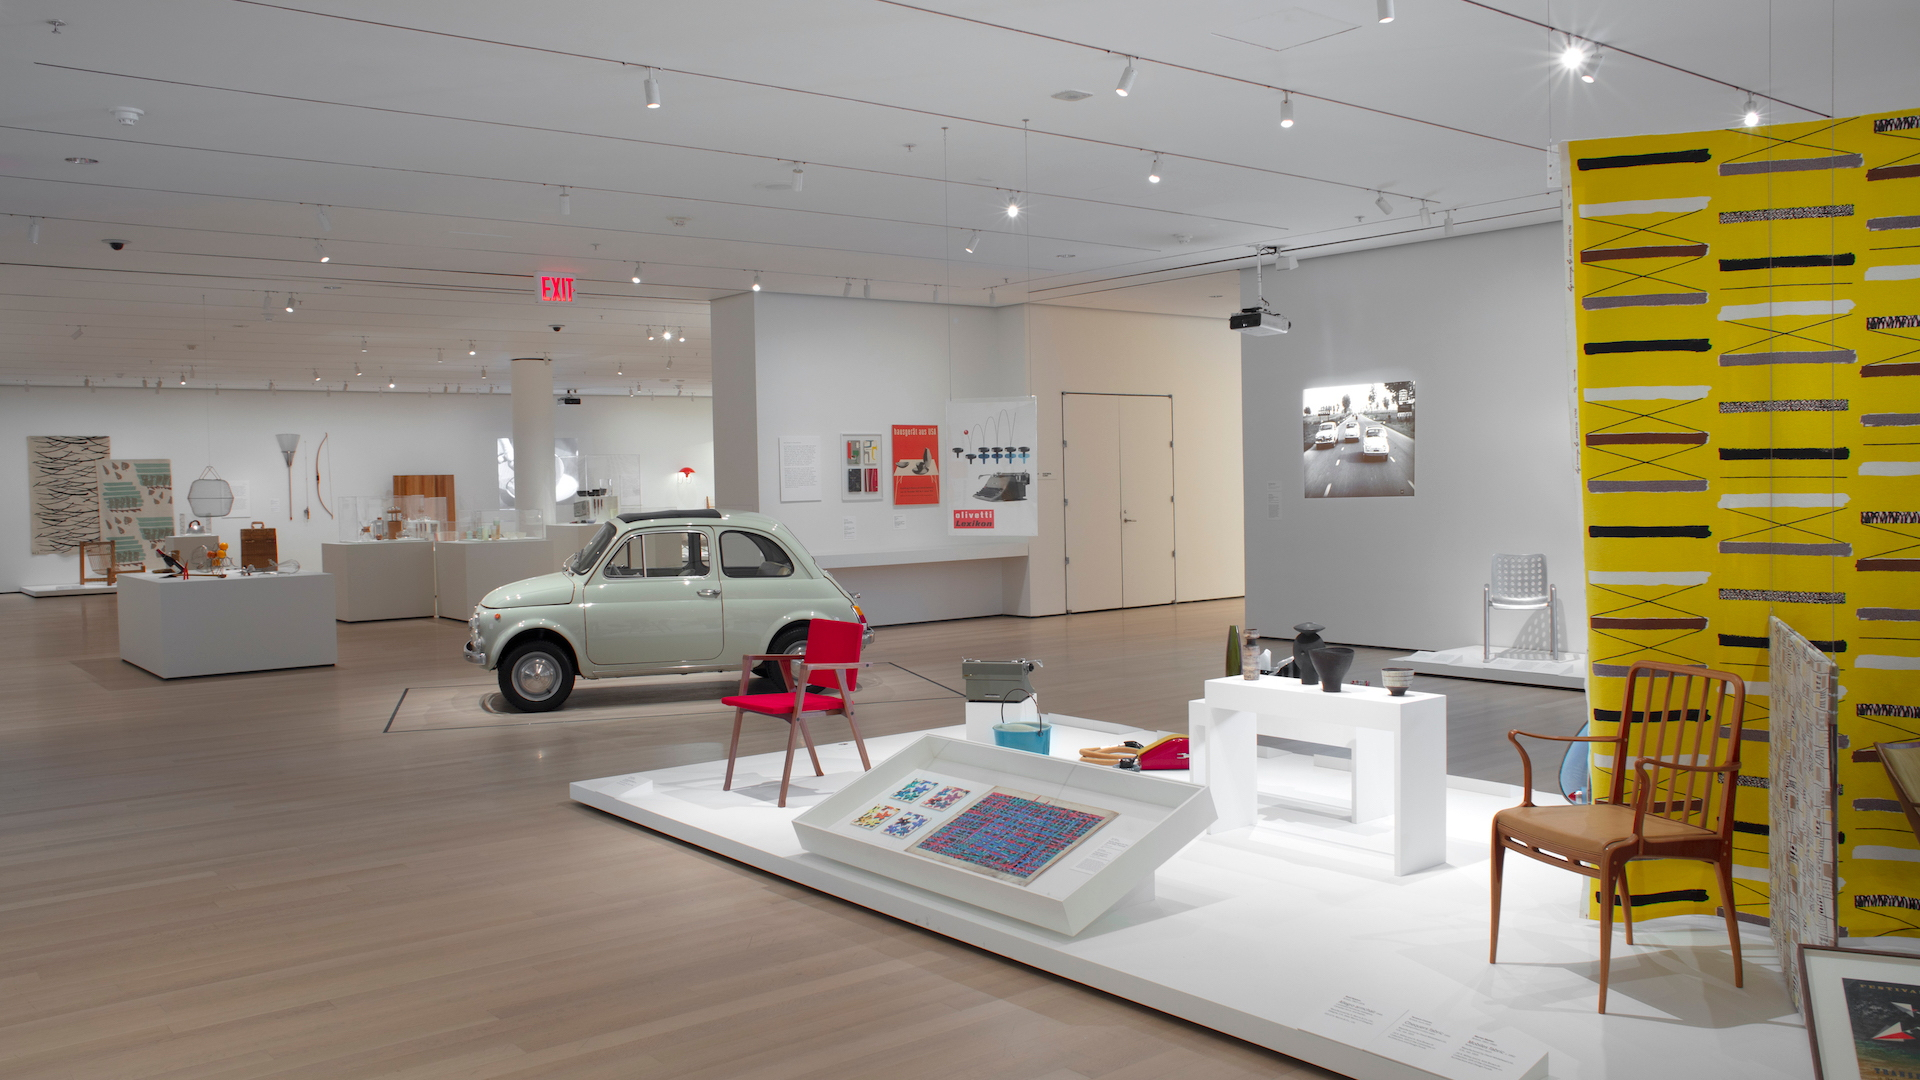 1965 Fiat 500 at New York Museum of Modern Art